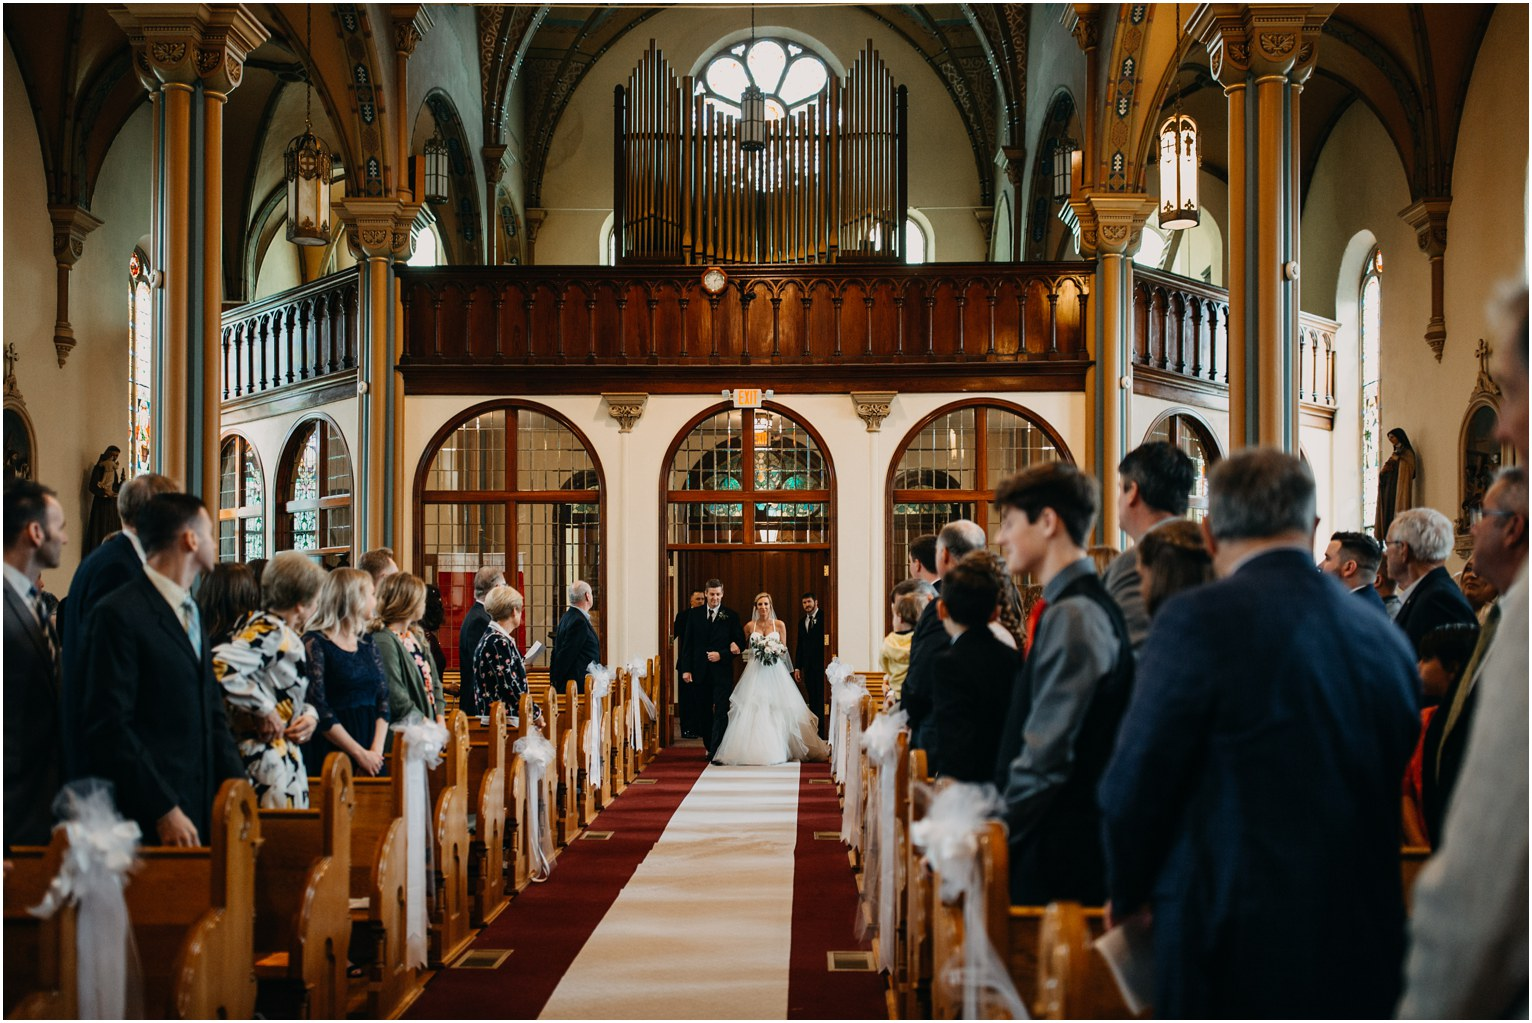 Bride Walking Down Isle at Catholic Church